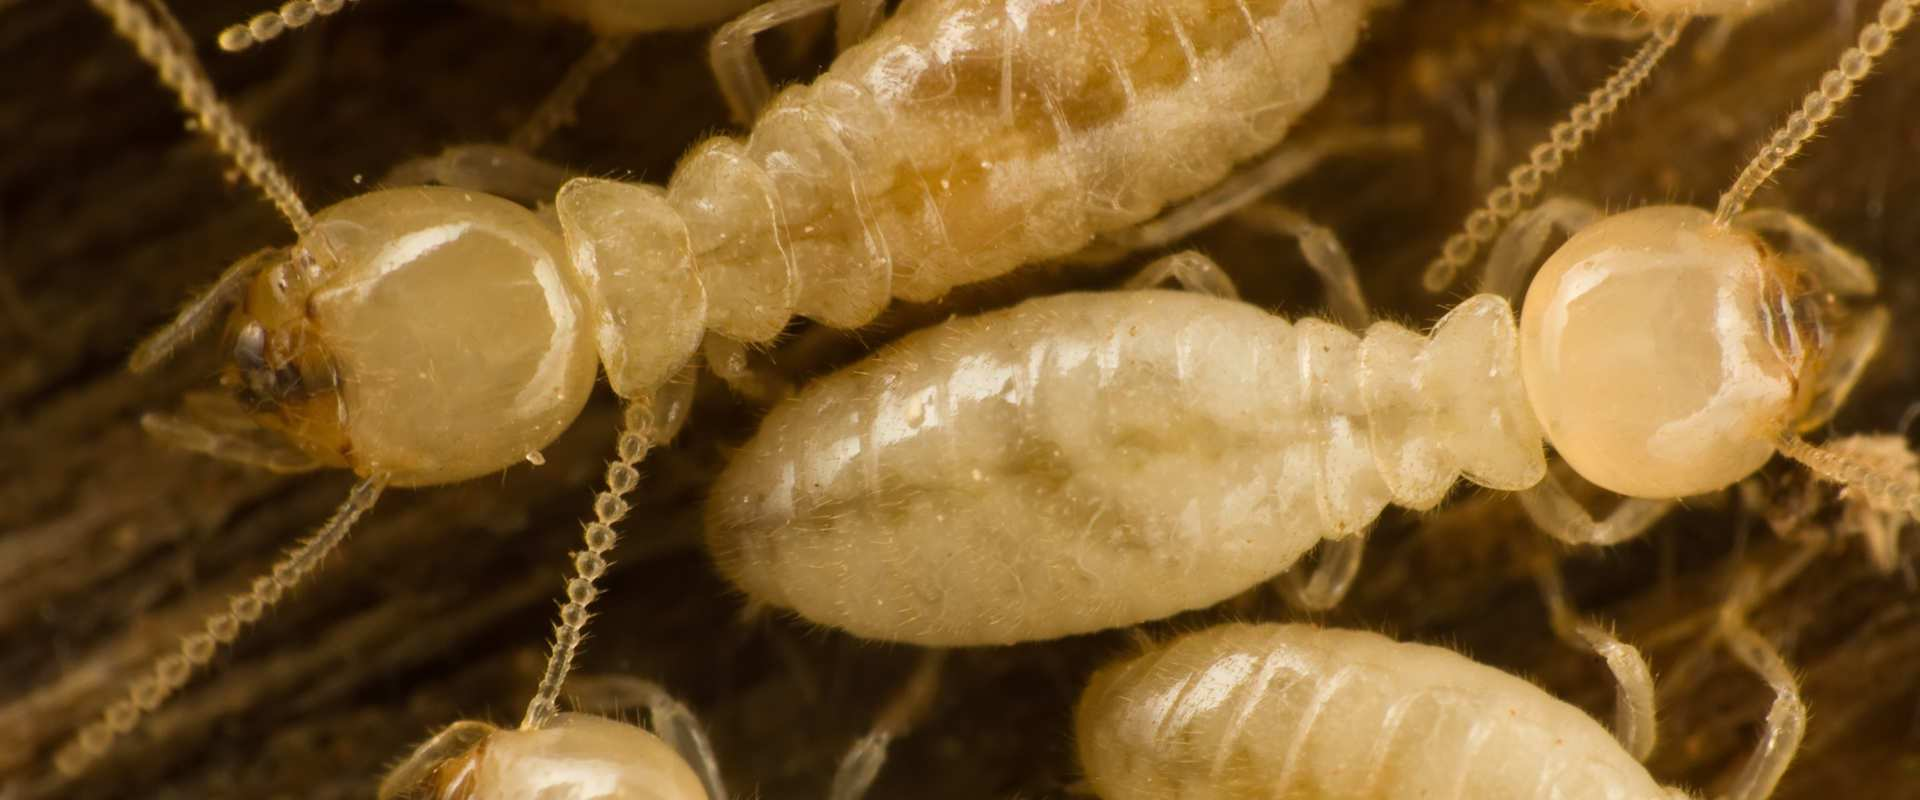 Termite Lawsuits